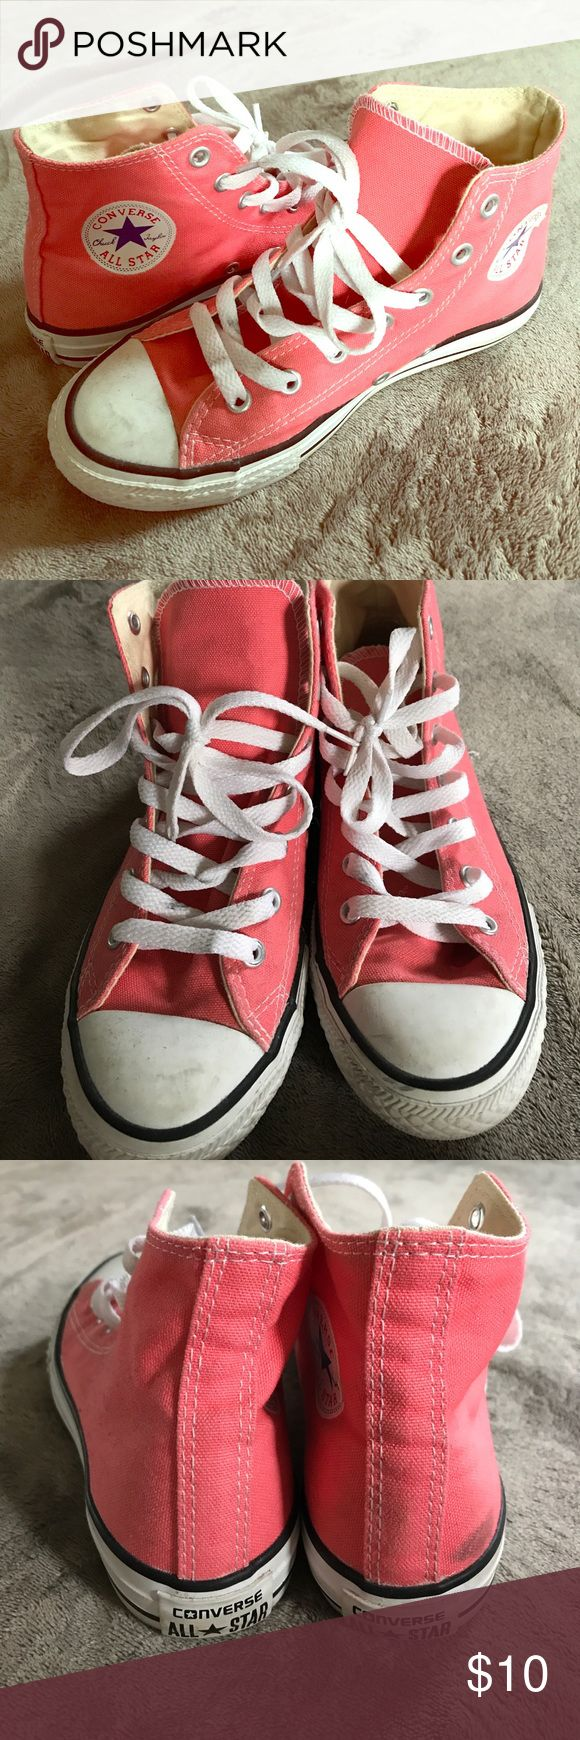 MOVE OUT SALE 💖pink high top Converse Pink high top Converse. Size 3 kids but they fit me (I wear 6-6.5 women's shoes). They are just a tiny bit scuffed up in the back but have truthfully only been worn once or twice. I'll take reasonable offers:) Converse Shoes Sneakers